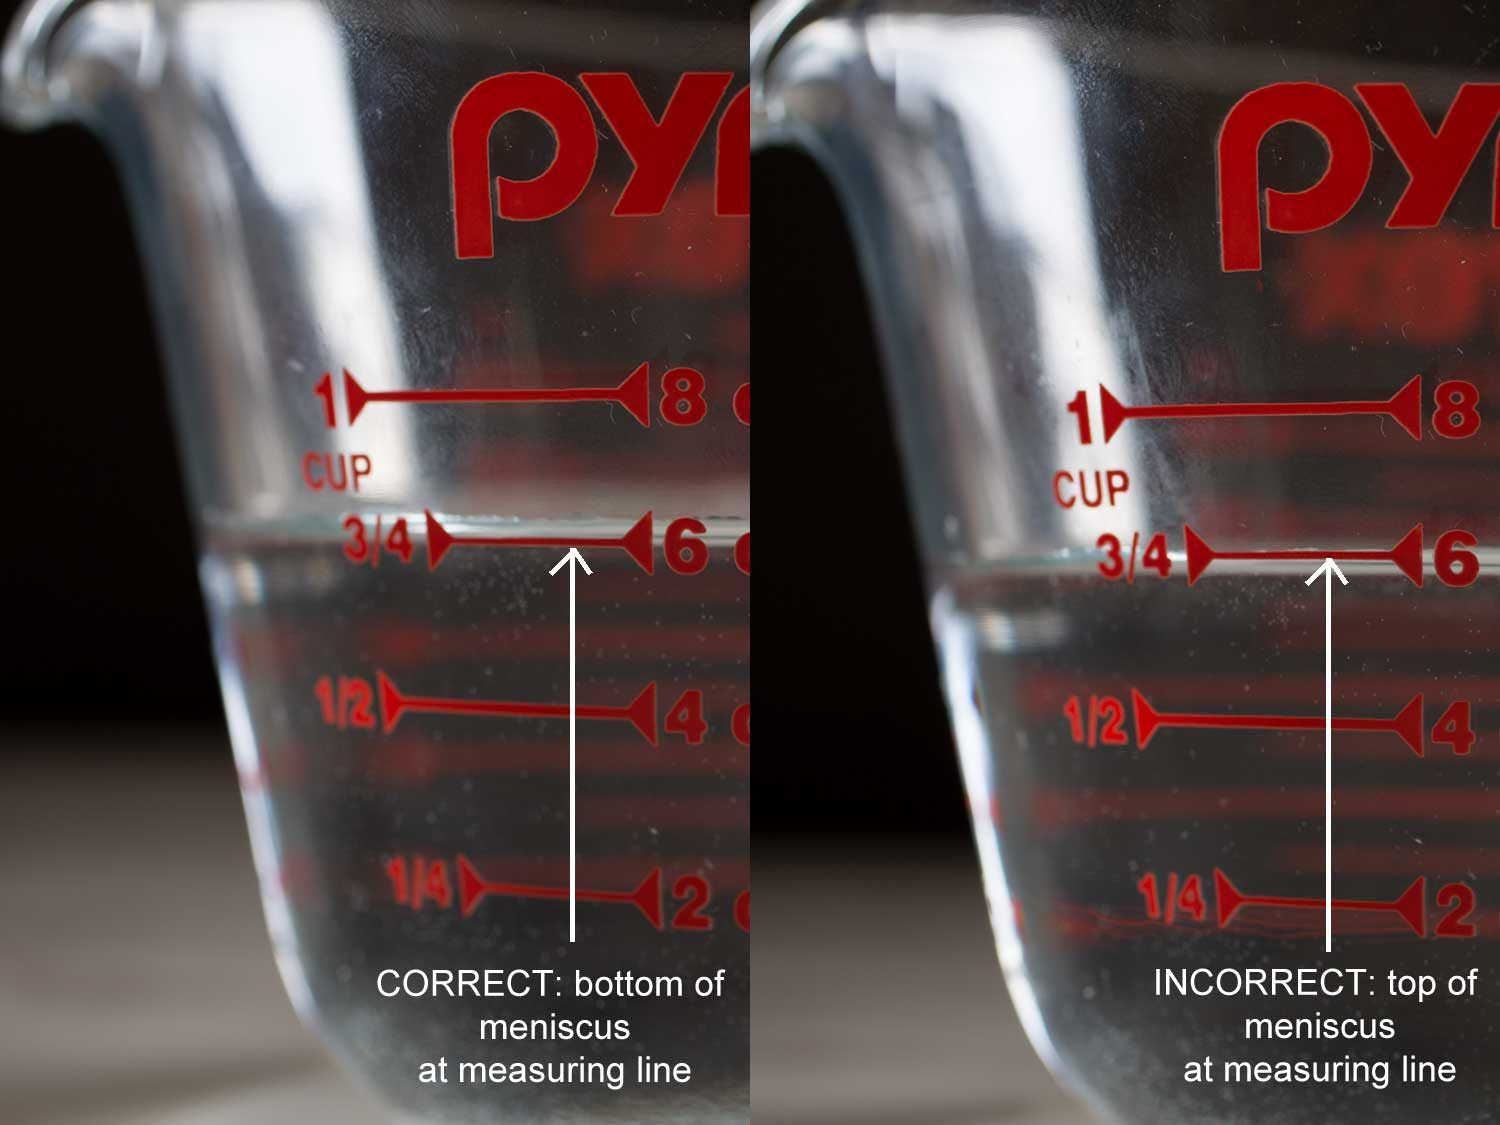 Graphic indicating how to measure in a liquid measuring cup.